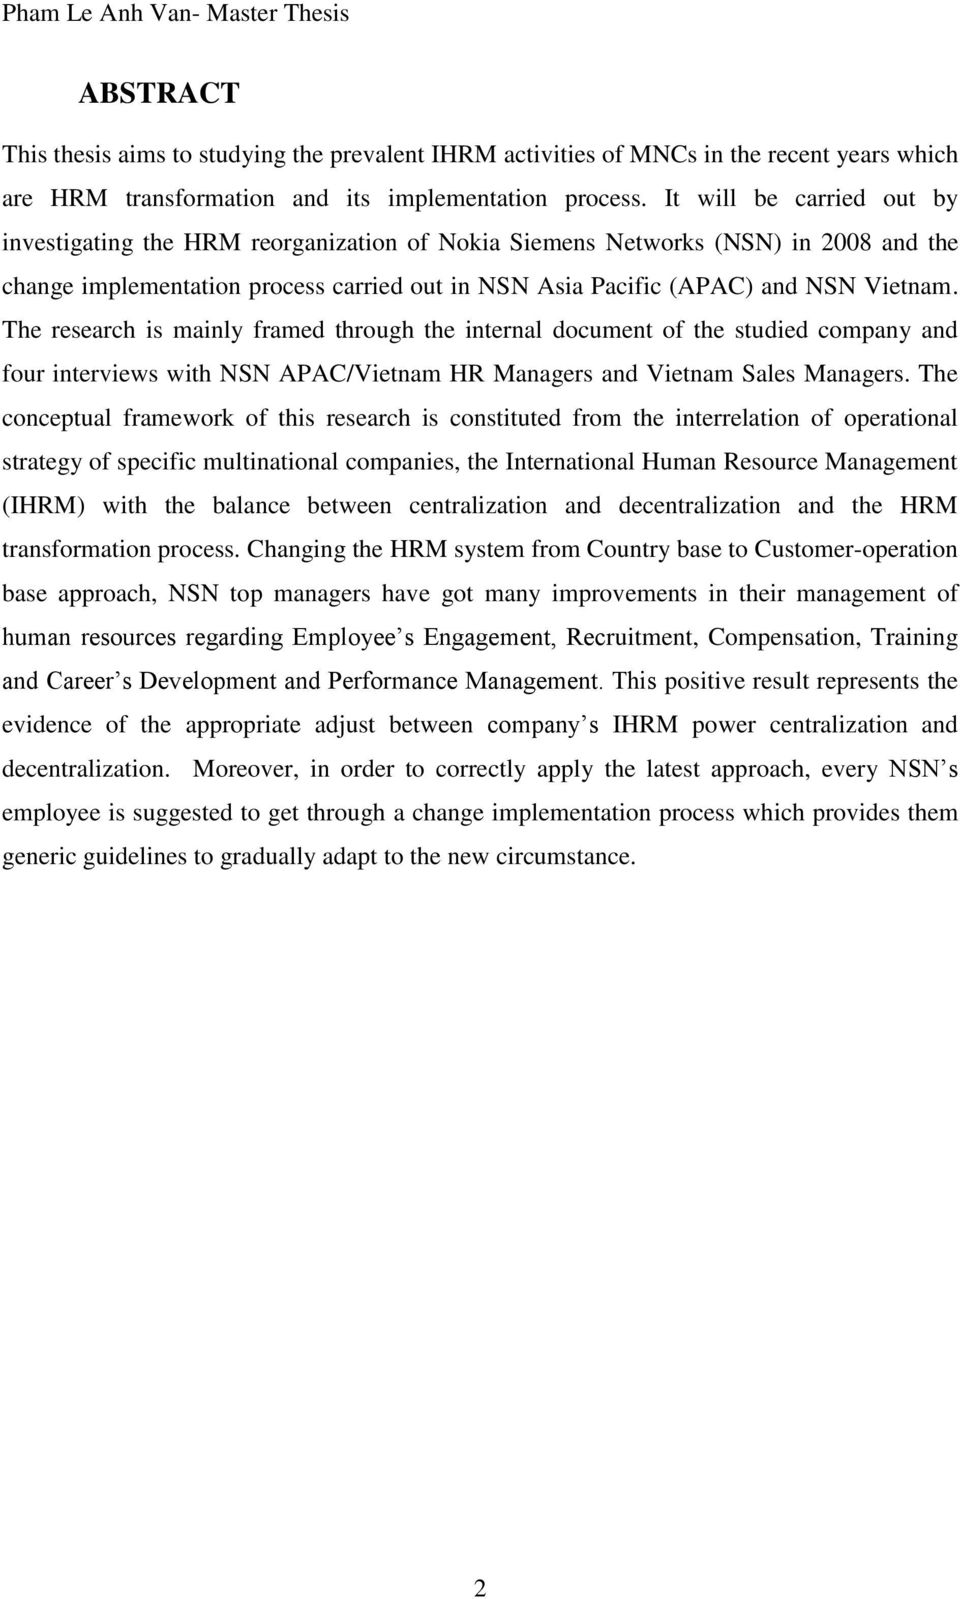 The research is mainly framed through the internal document of the studied company and four interviews with NSN APAC/Vietnam HR Managers and Vietnam Sales Managers.